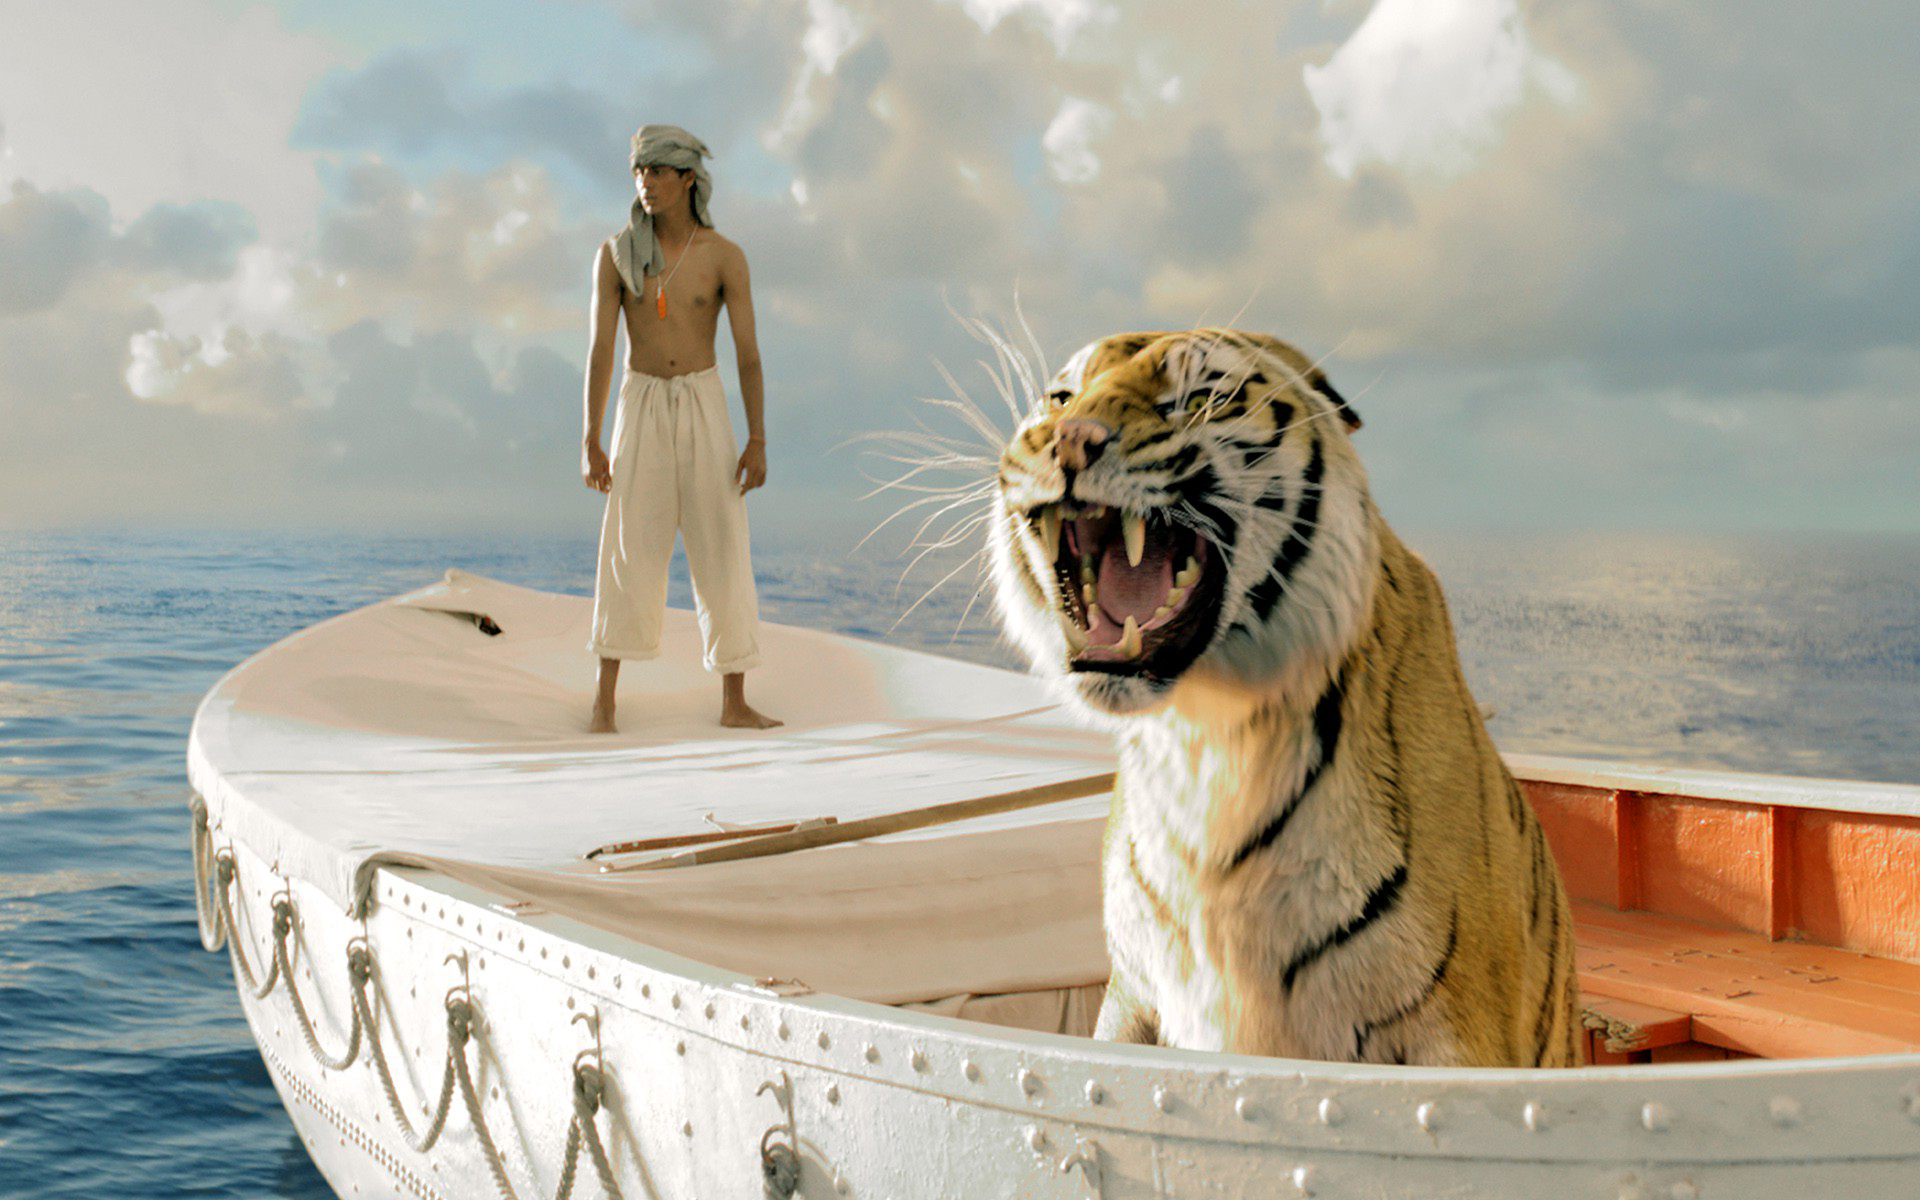 Life of pi wallpaper 1920x1200 69886 for Life of pi cast